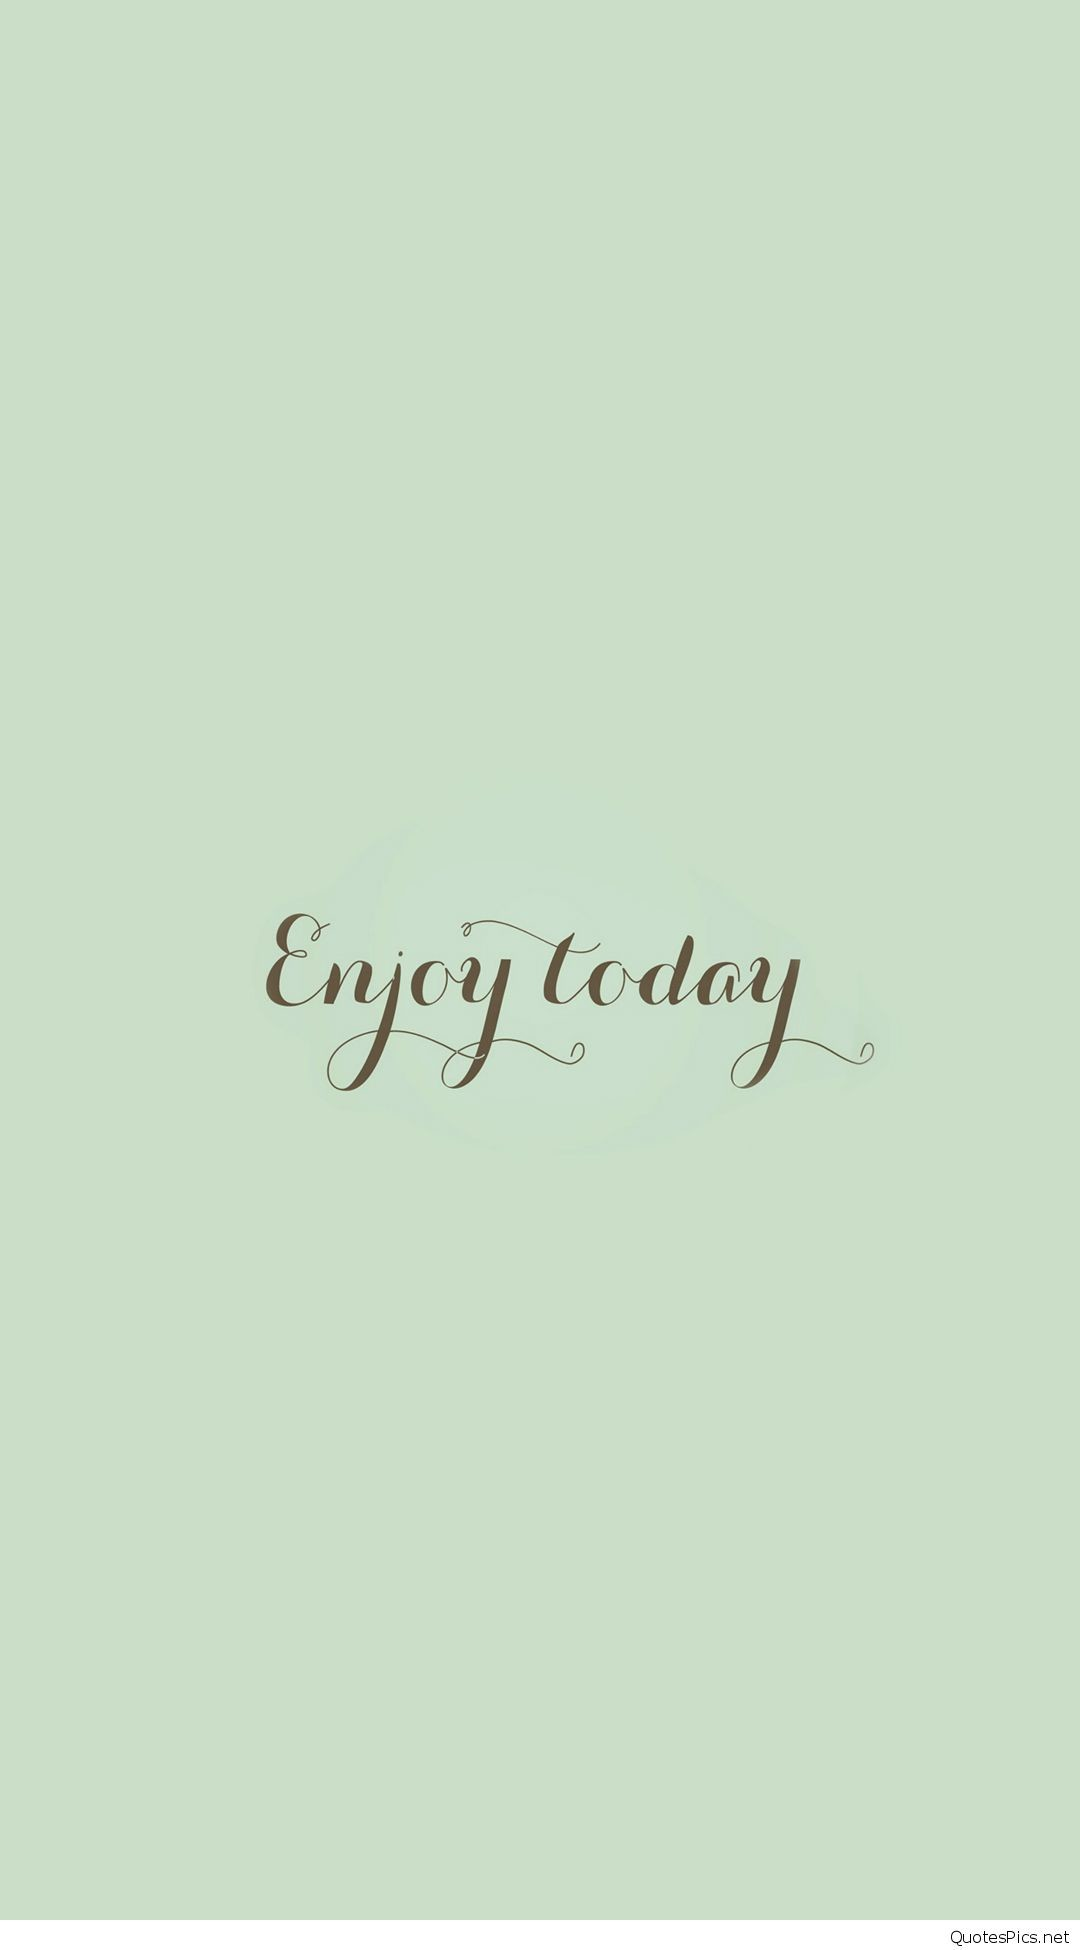 Enjoy-Today-Love-Art-Quote-Simple-iphone-6-.  1c27760ad3d7cb81c0668d0a1436f17f